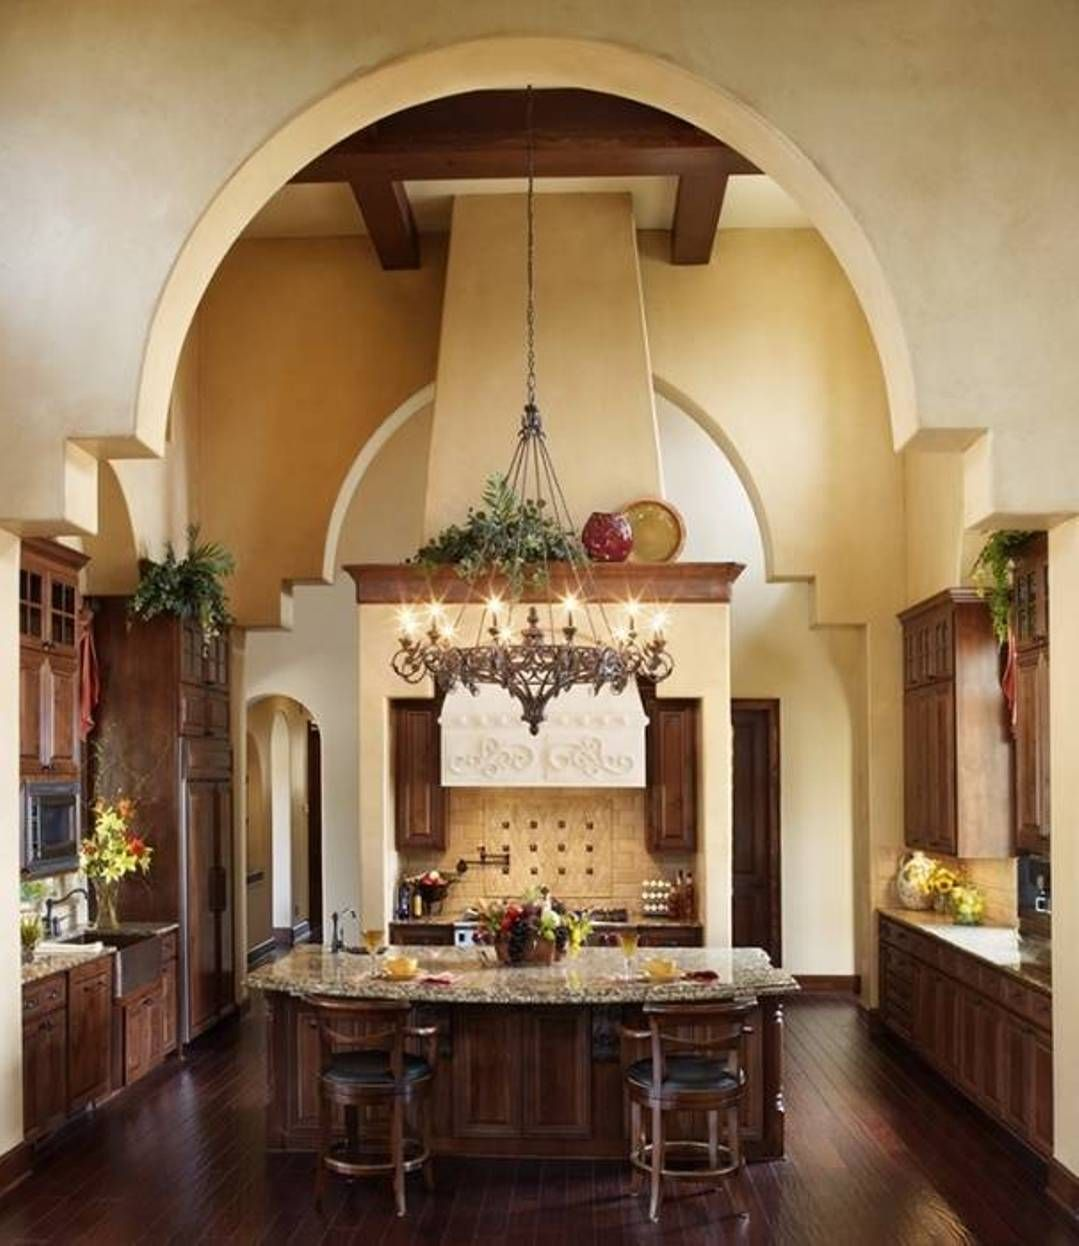 Tuscan Kitchen Island Black Cabinet Handles Center With Adorable Chandelier In